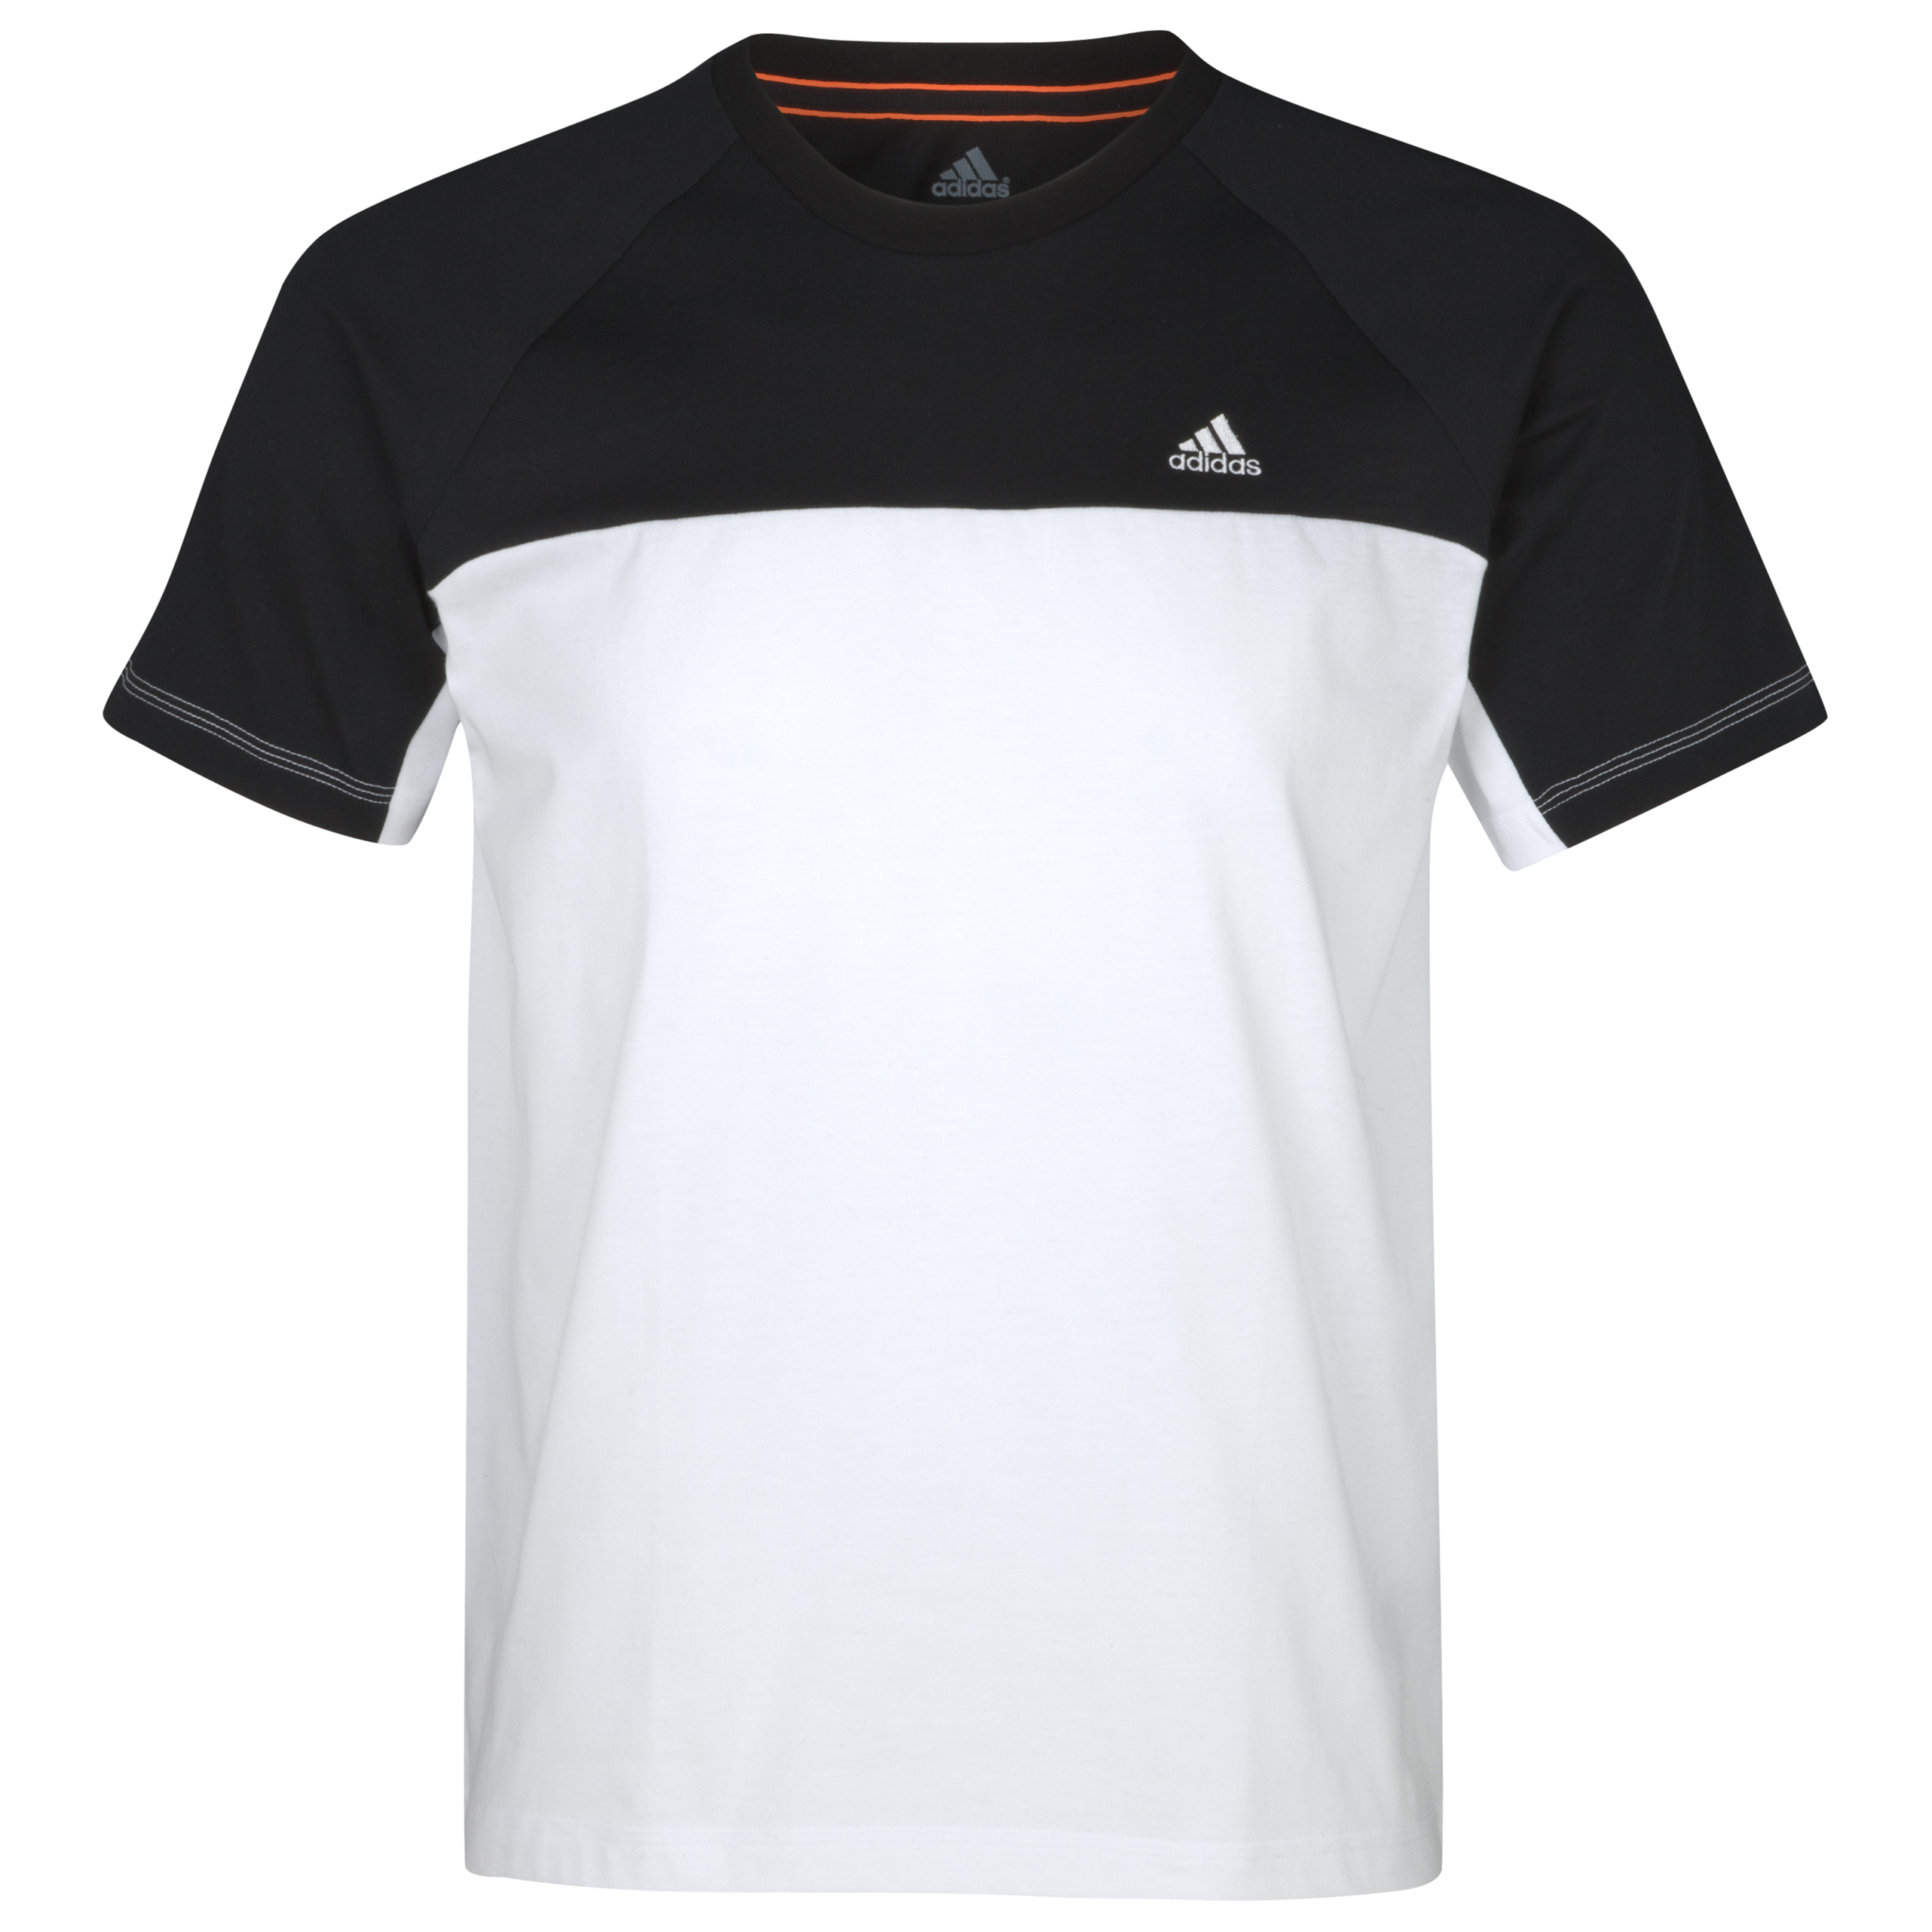 Adidas Essentials Crew T-Shirt - White/Black